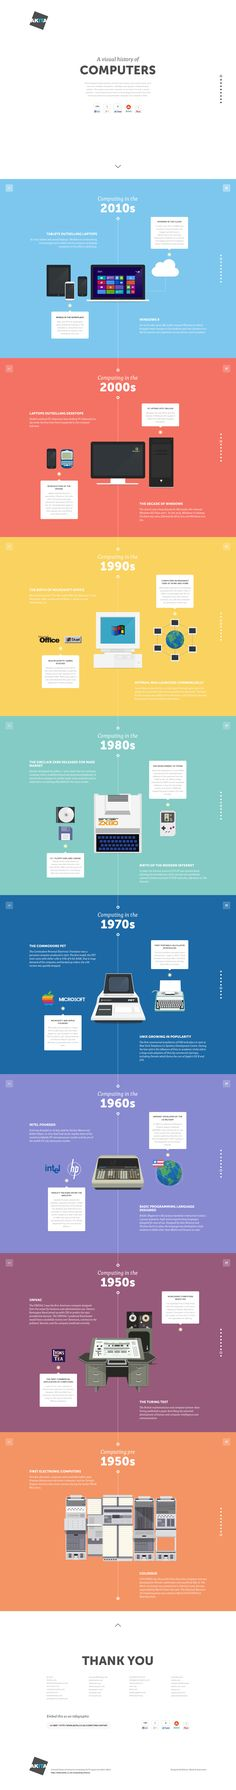 The modern personal computer as we know it is only a recent invention - see how this technology has evolved since the first computer was created